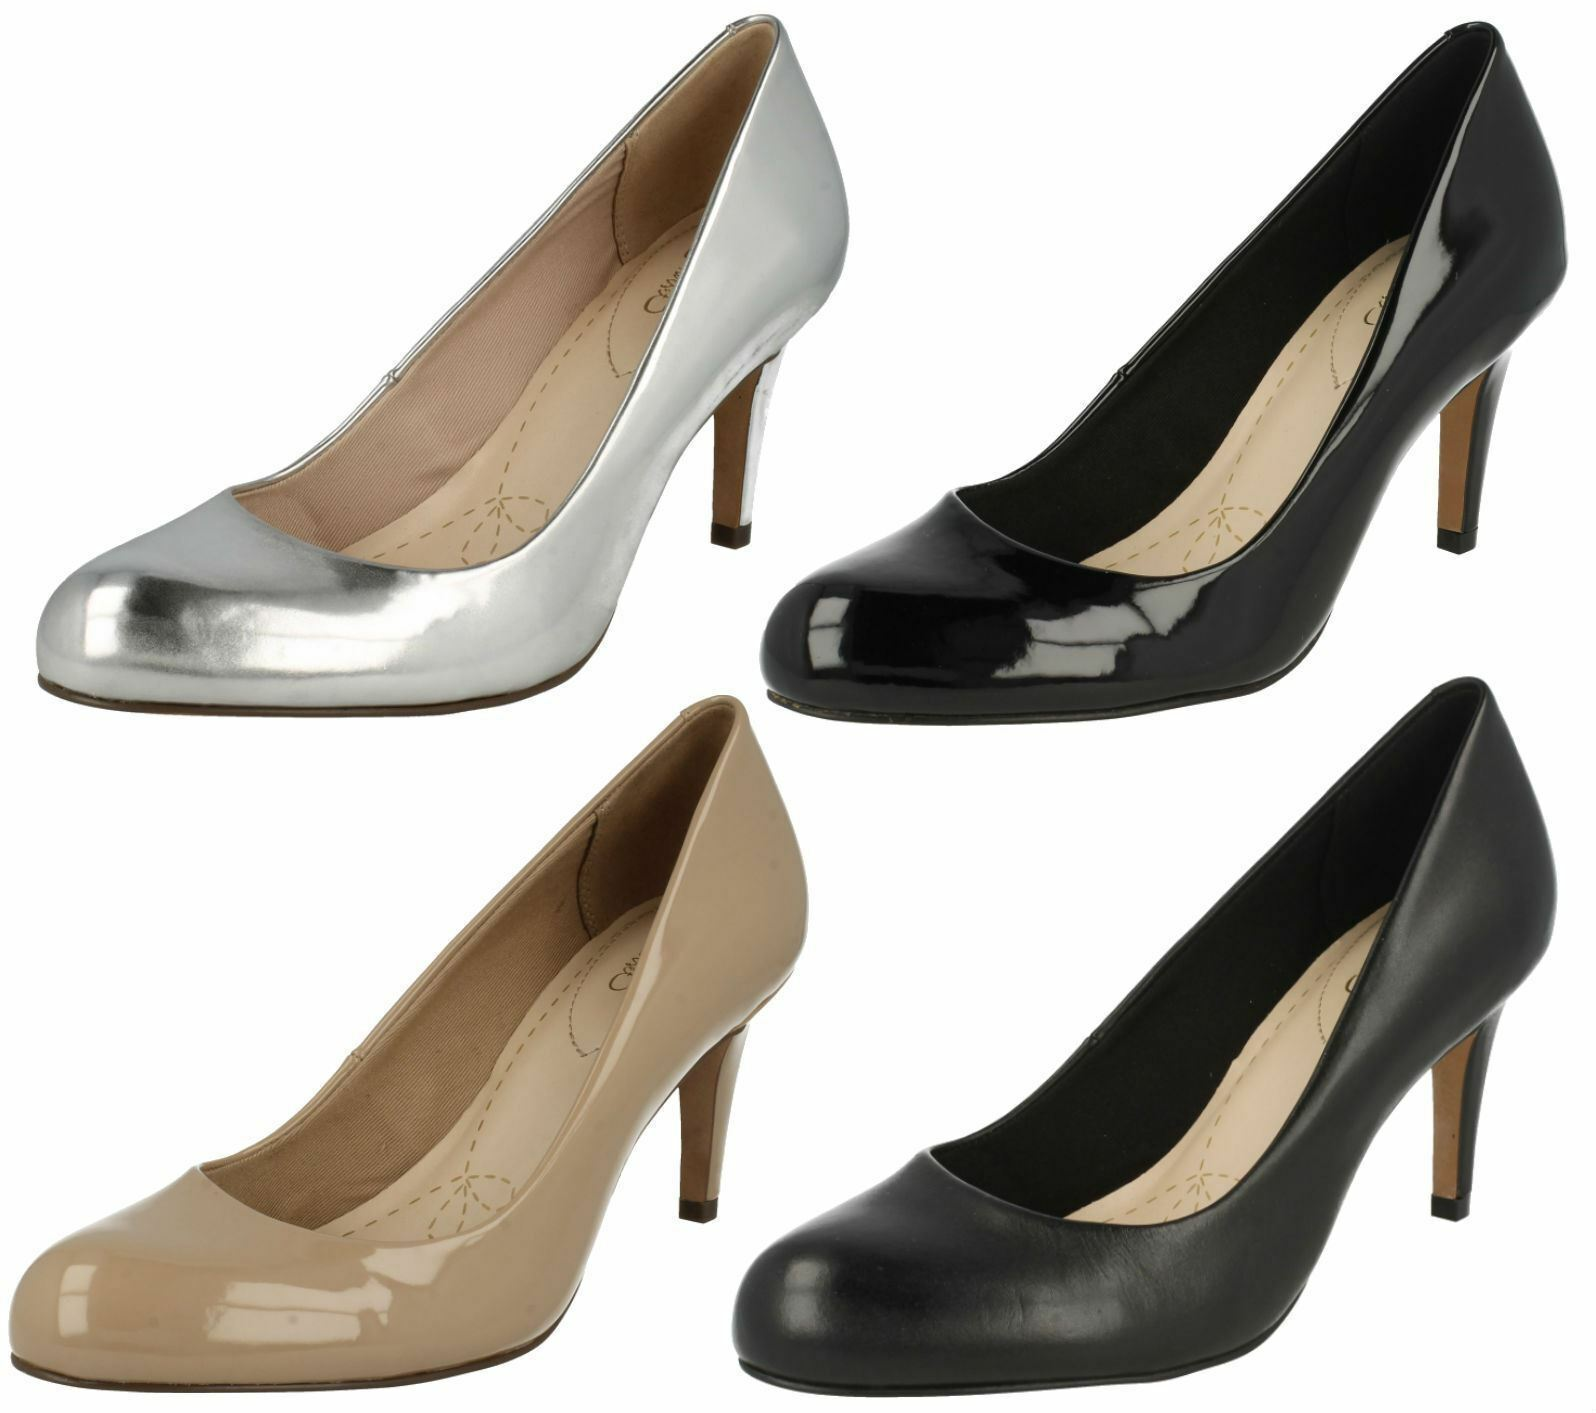 Ladies Clarks Court Shoes 'Carlita Cove' 4 Colours- D Fitting- Great Price